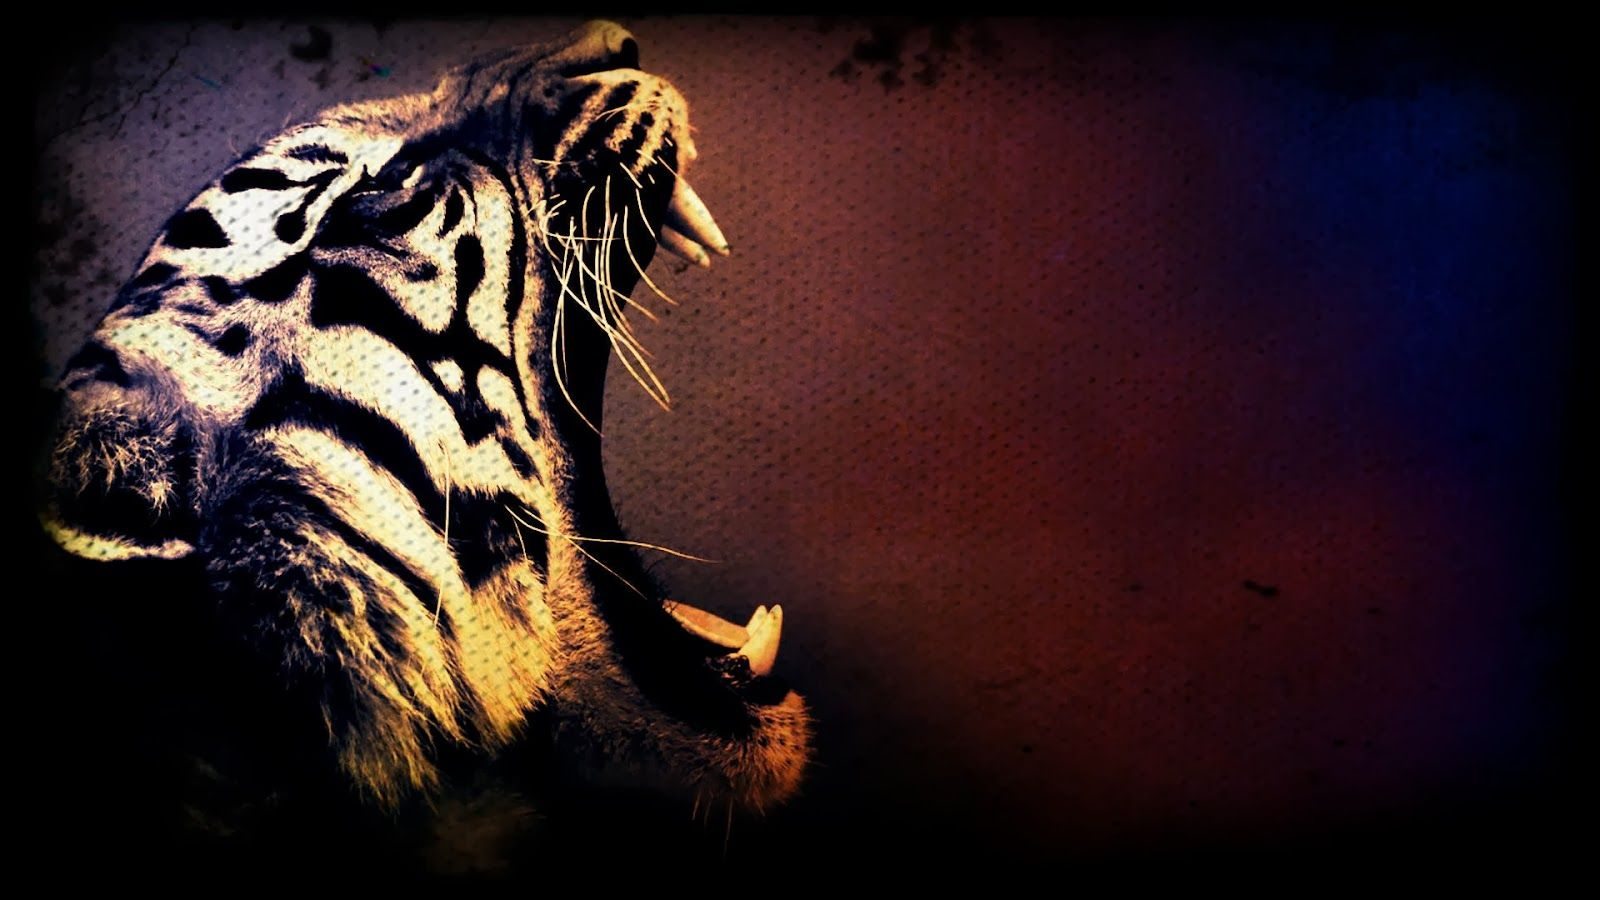 Amazing Tiger Wallpaper Tiger Pictures Tiger Art Tiger Pictures Tiger Wallpaper